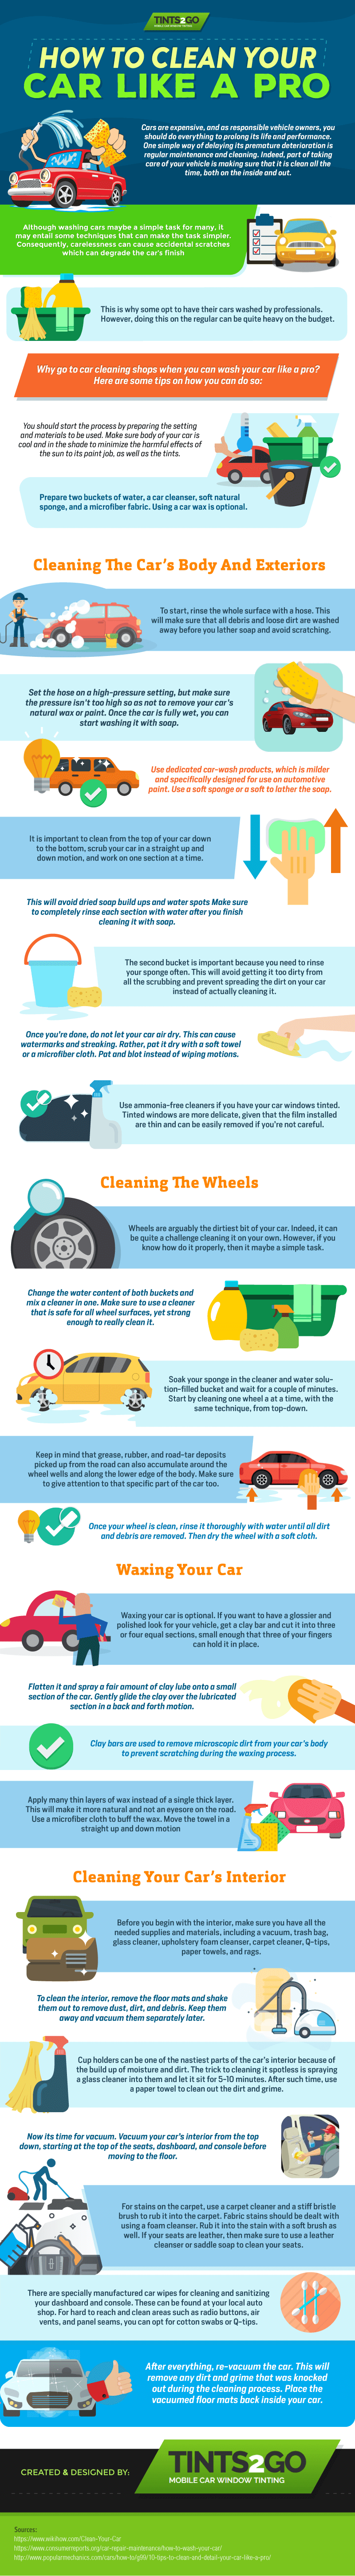 How-to-Clean-your-Car-like-a-Pro